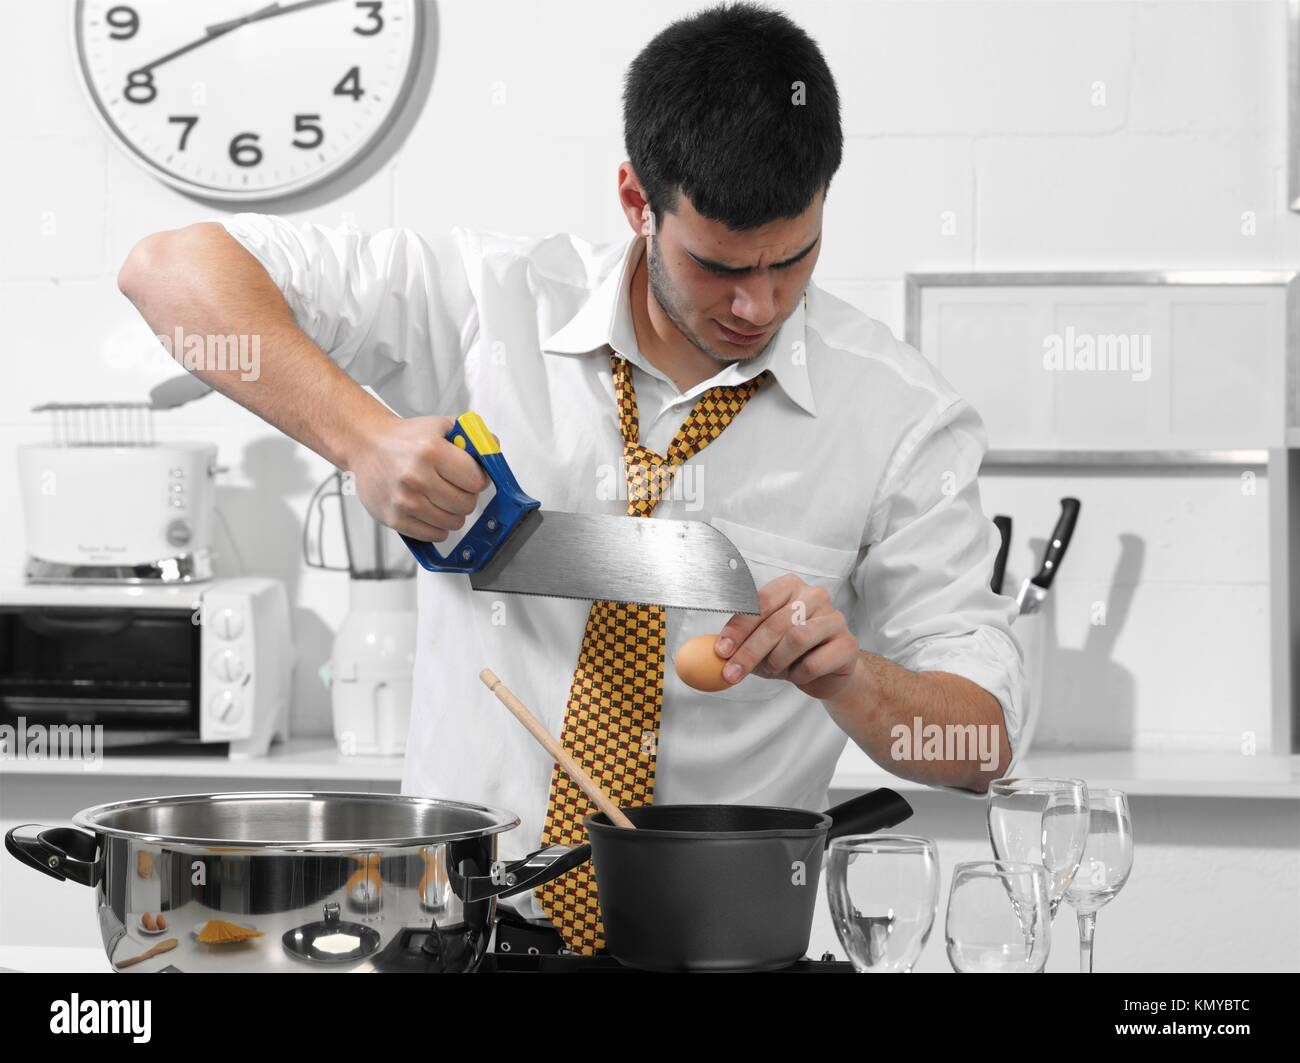 Business Man In The Kitchen Cutting An Egg With A Saw Stock Photo Alamy